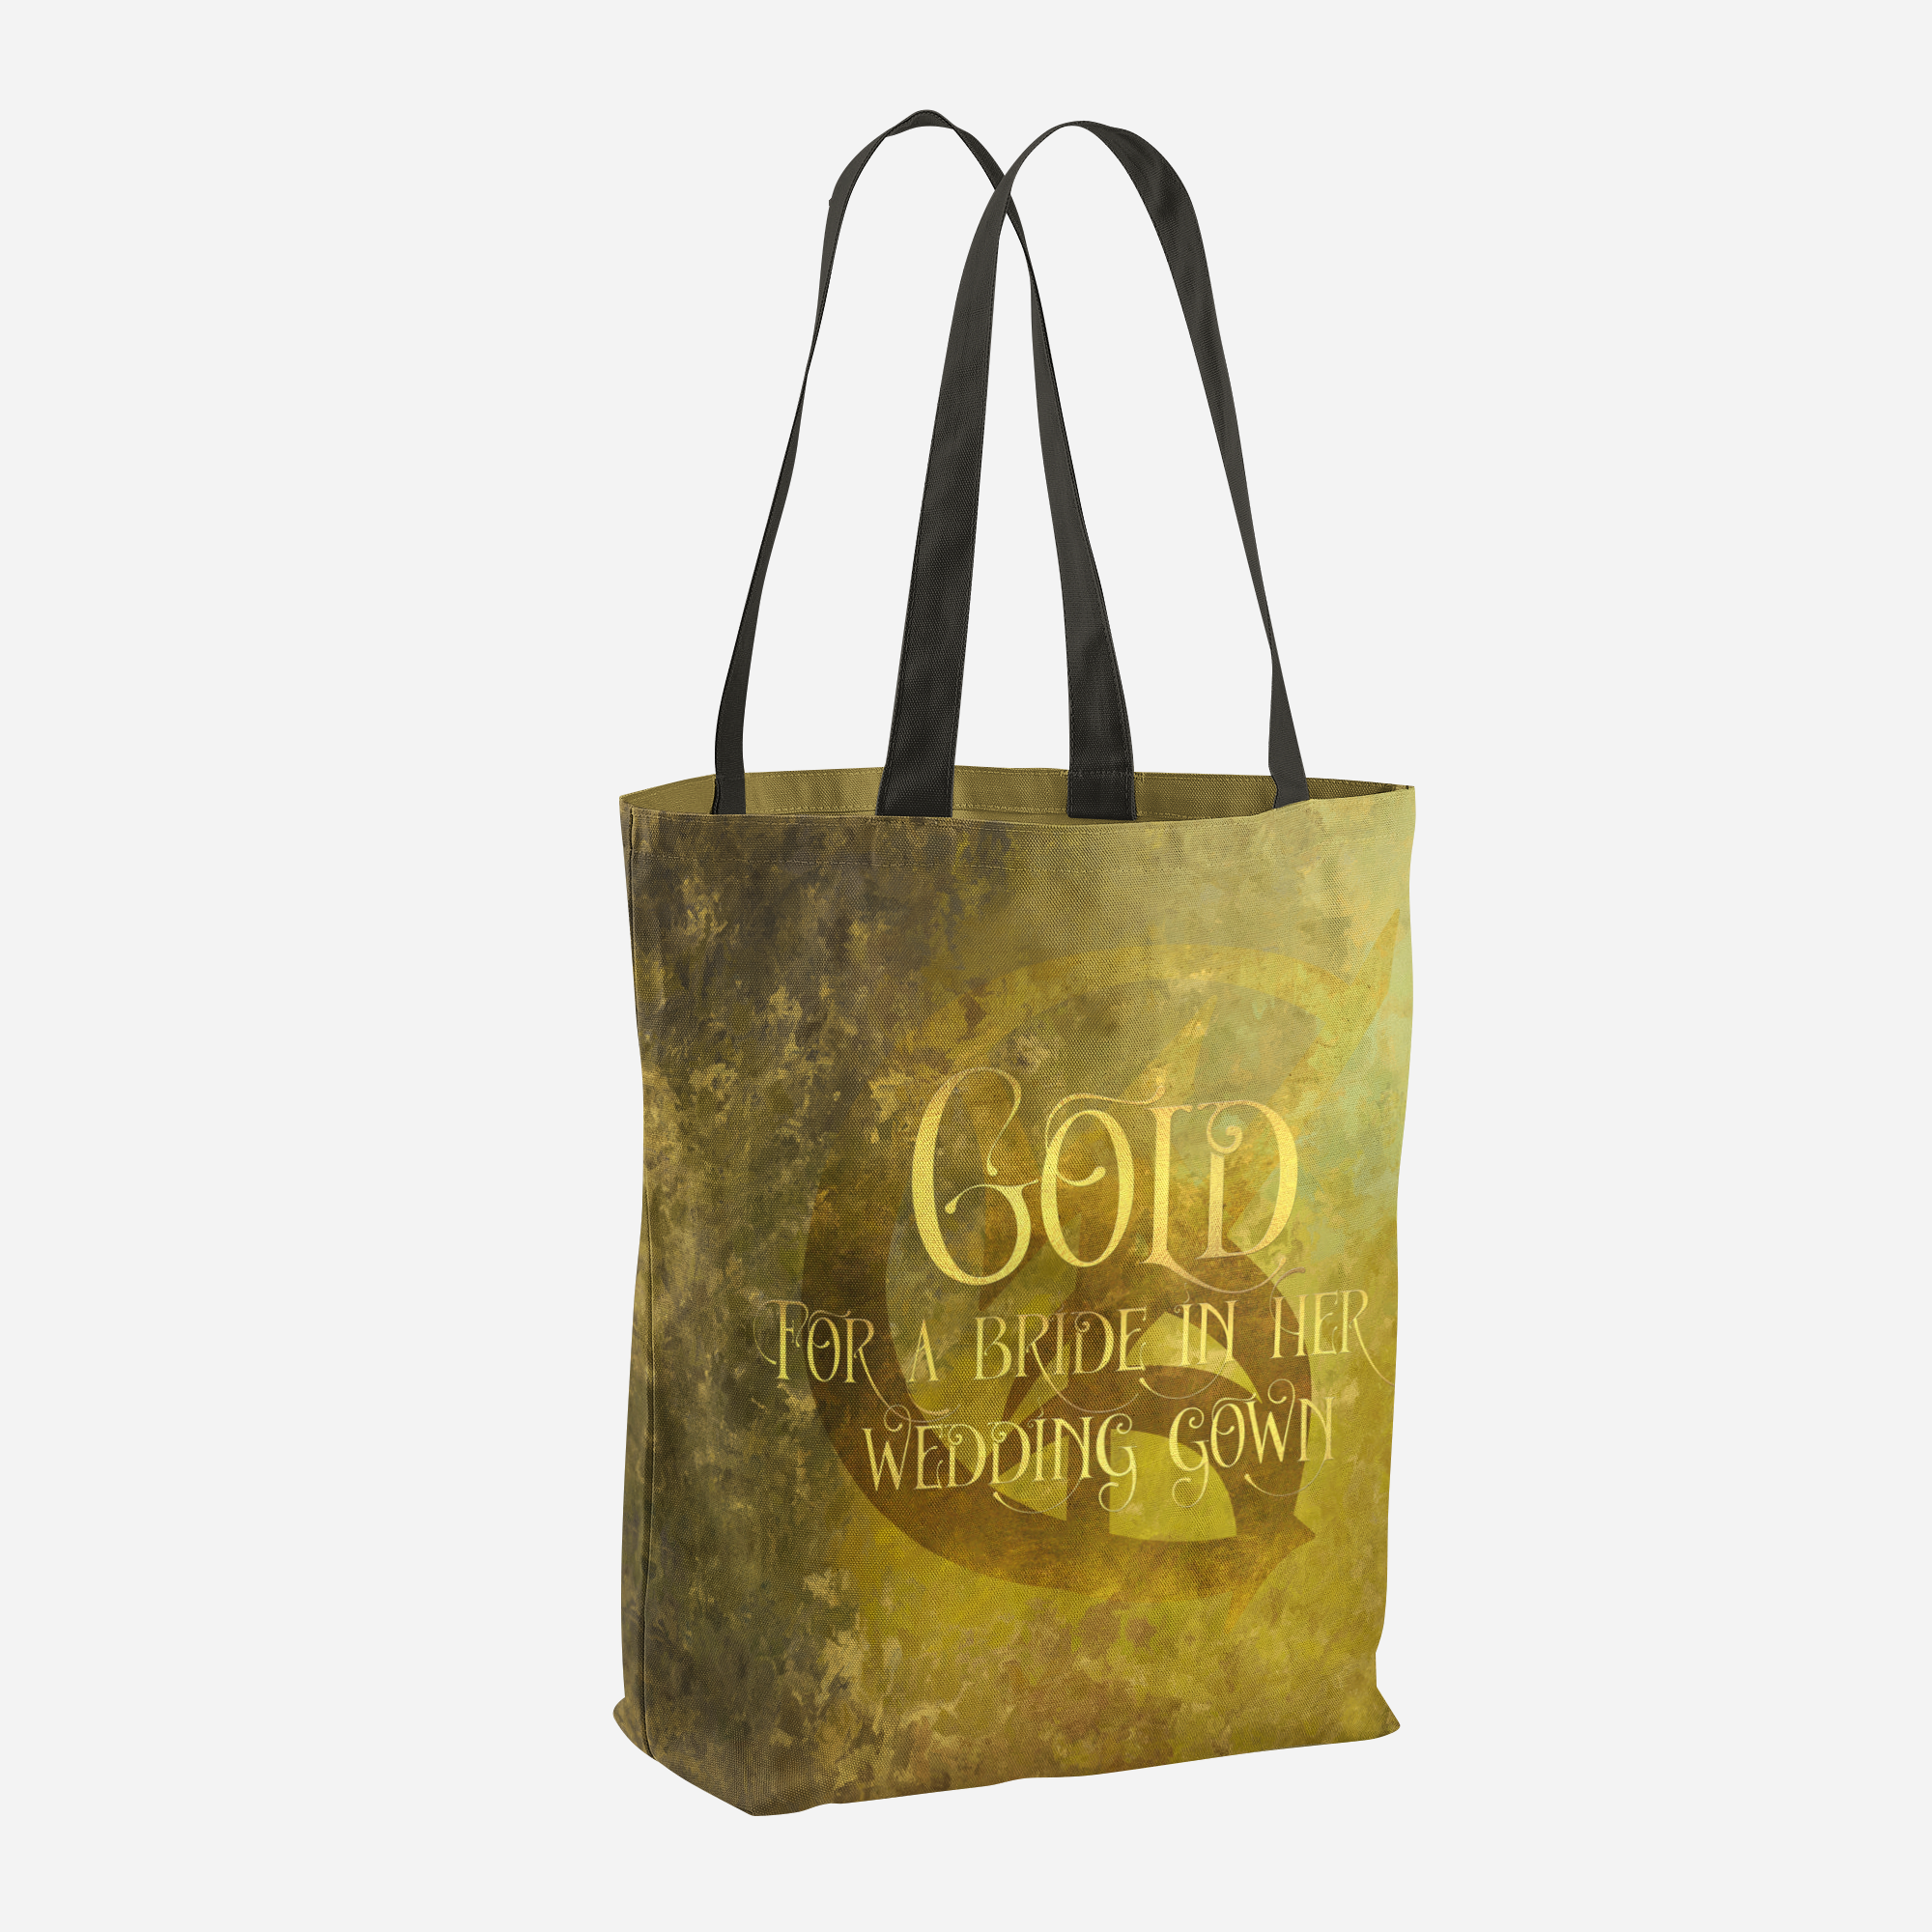 GOLD for a bride in her wedding gown. Shadowhunter Children's Rhyme Quote Tote Bag - LitLifeCo.